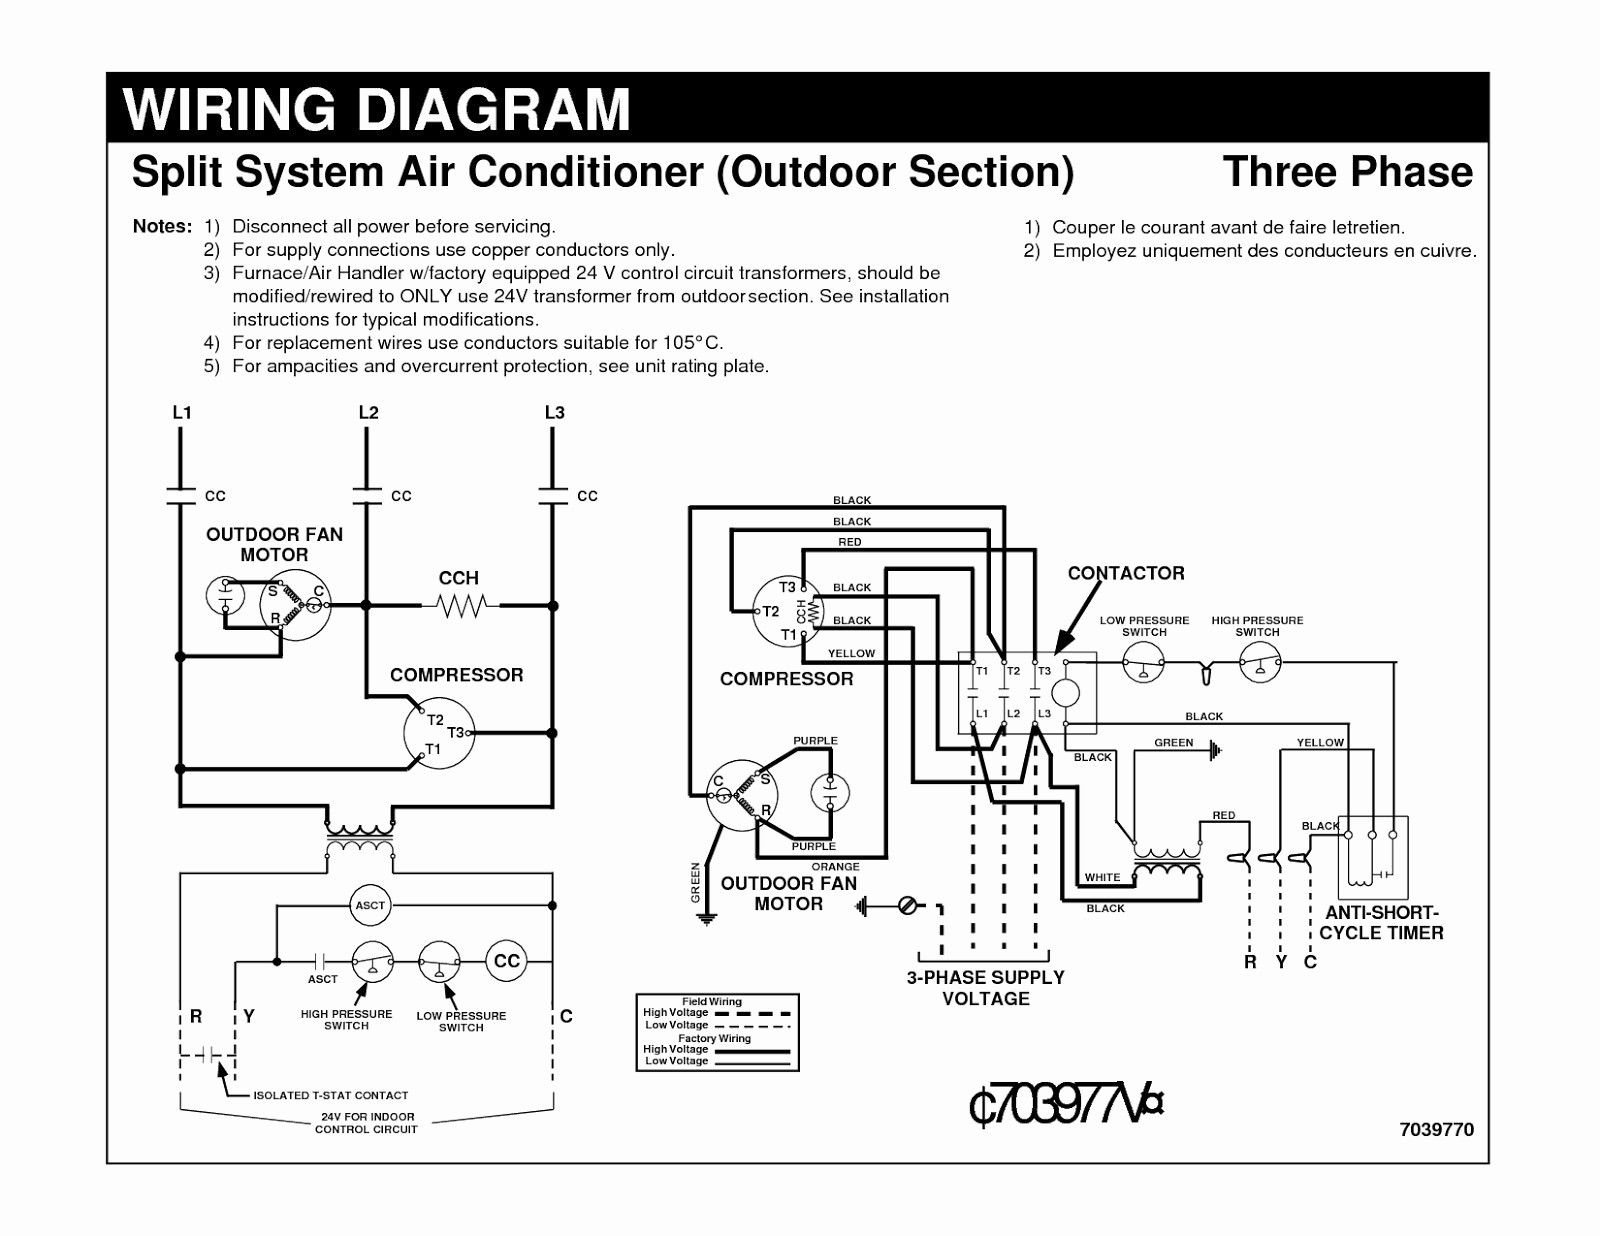 New Fire Alarm System Wiring Diagram Pdf Electrical Circuit